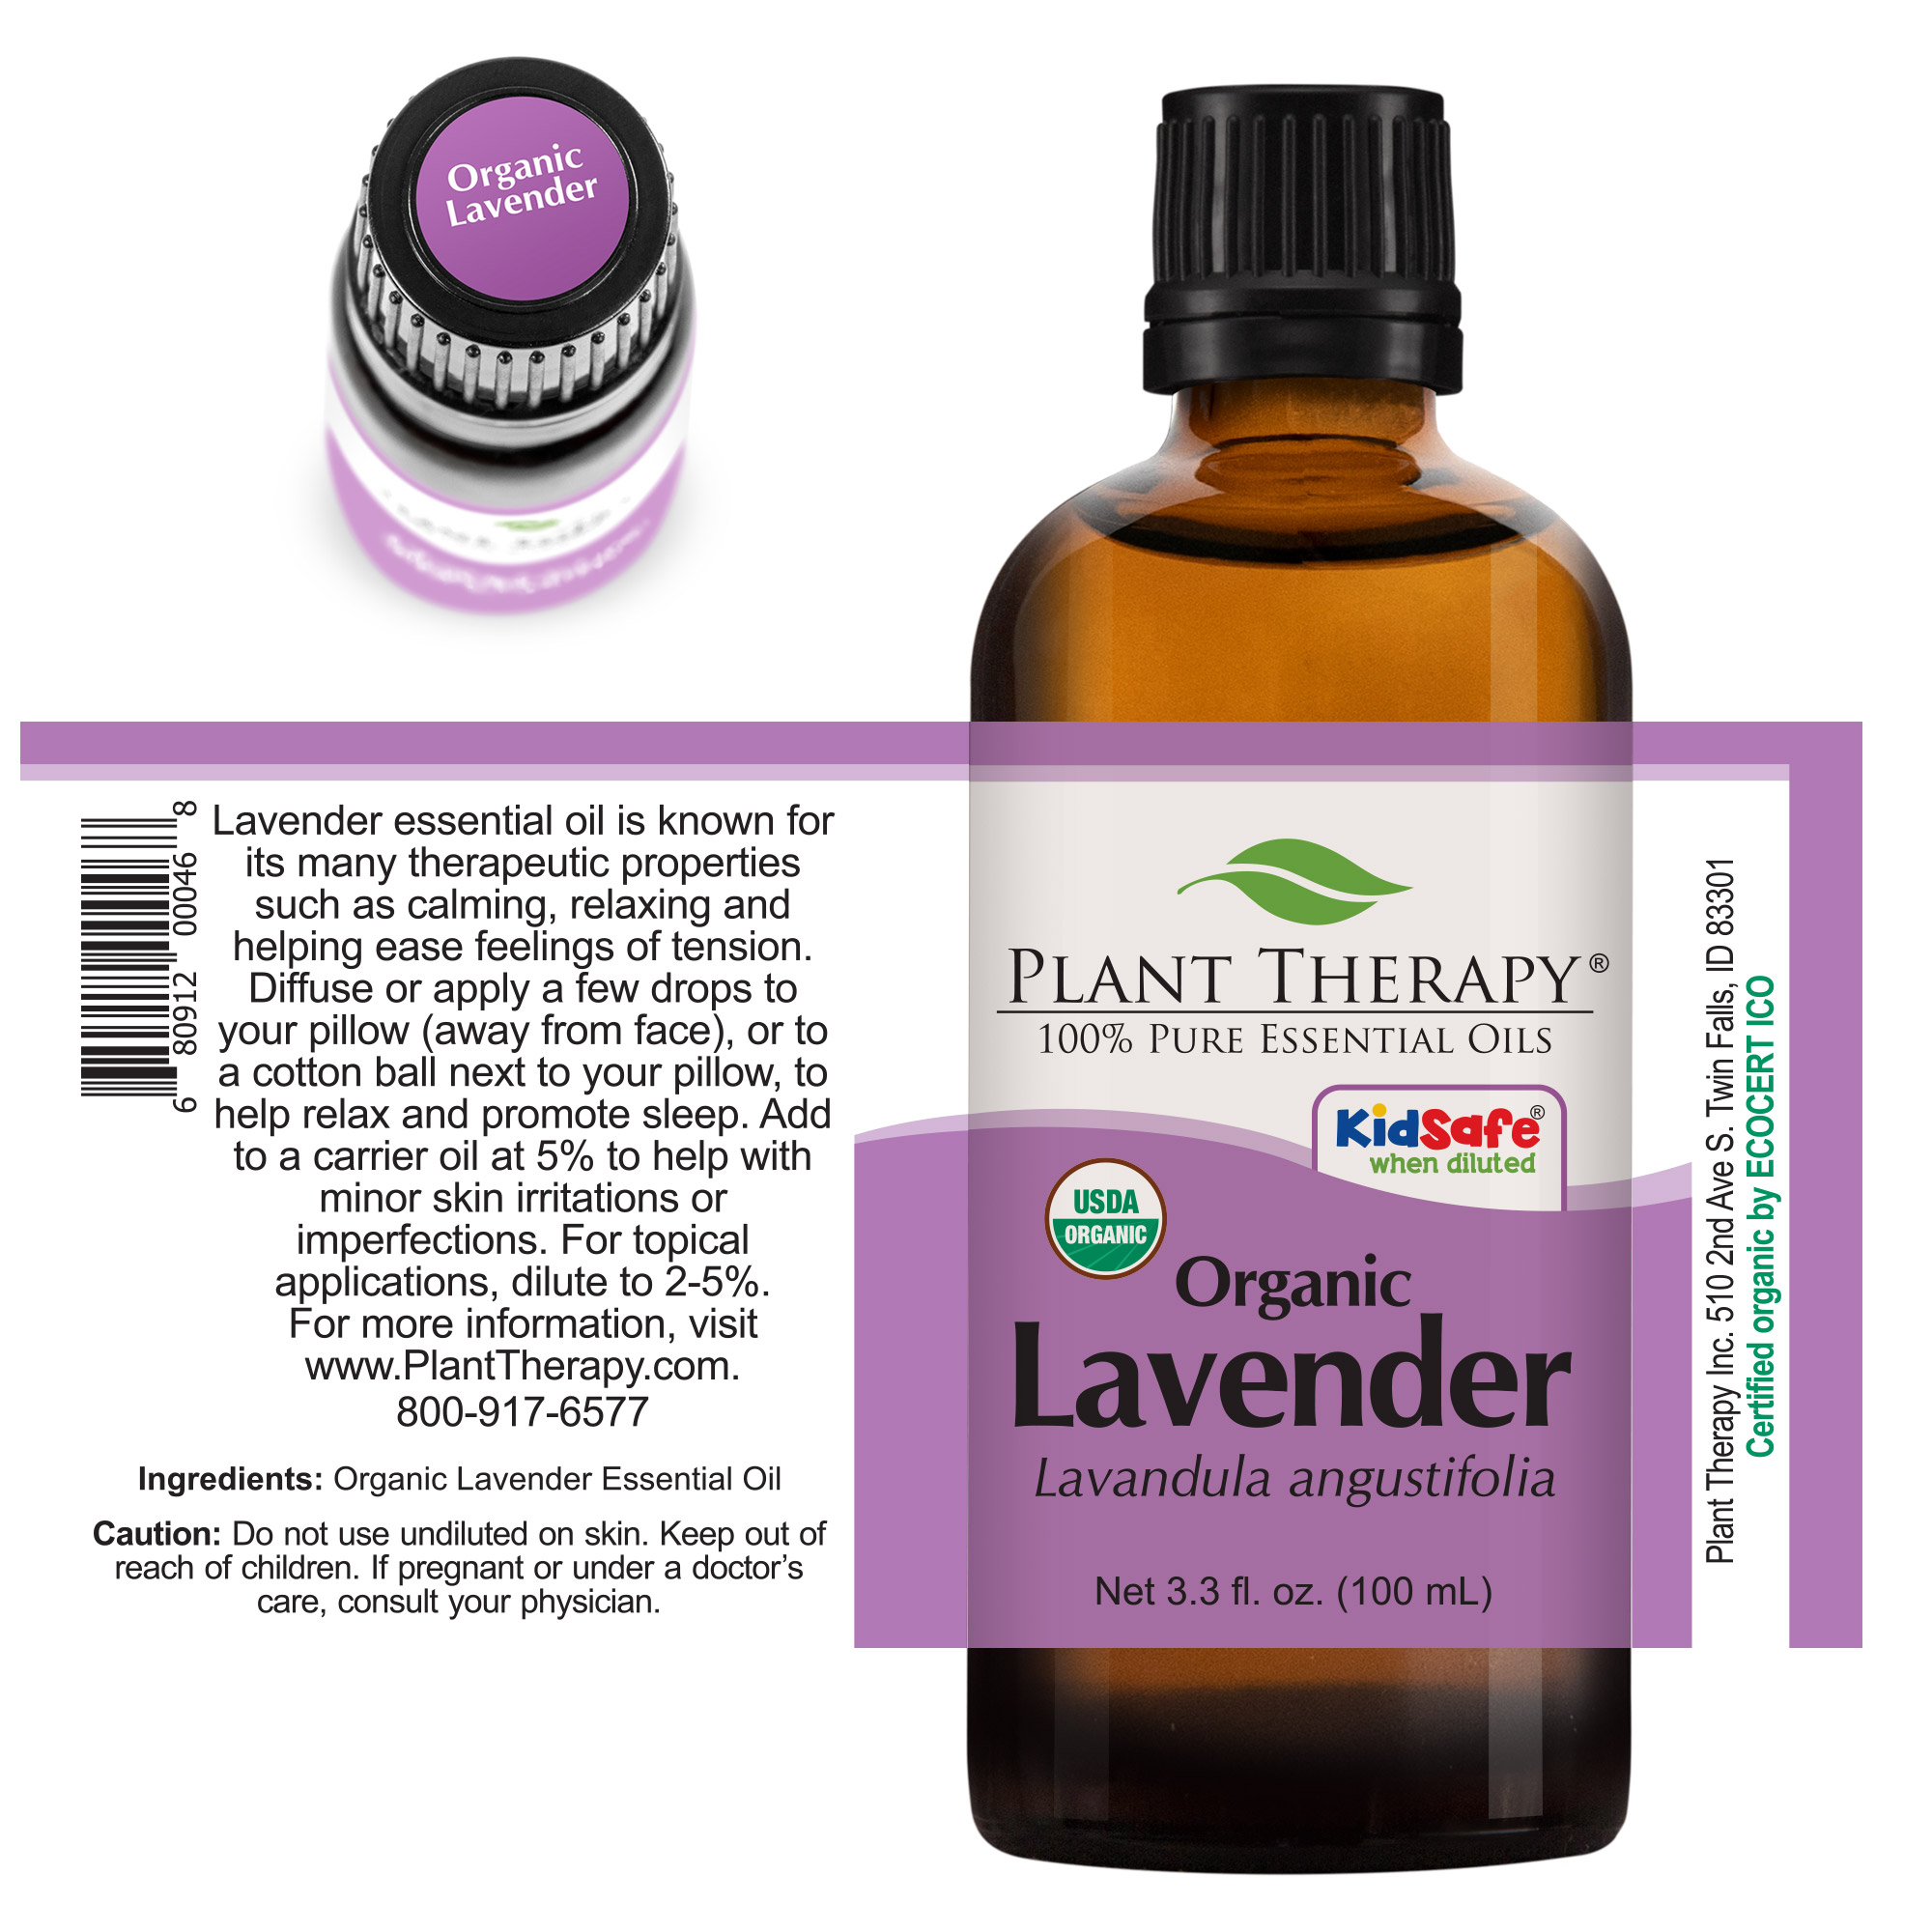 Plant-Therapy-Lavender-Organic-Essential-Oil-100-Pure-Undiluted thumbnail 11